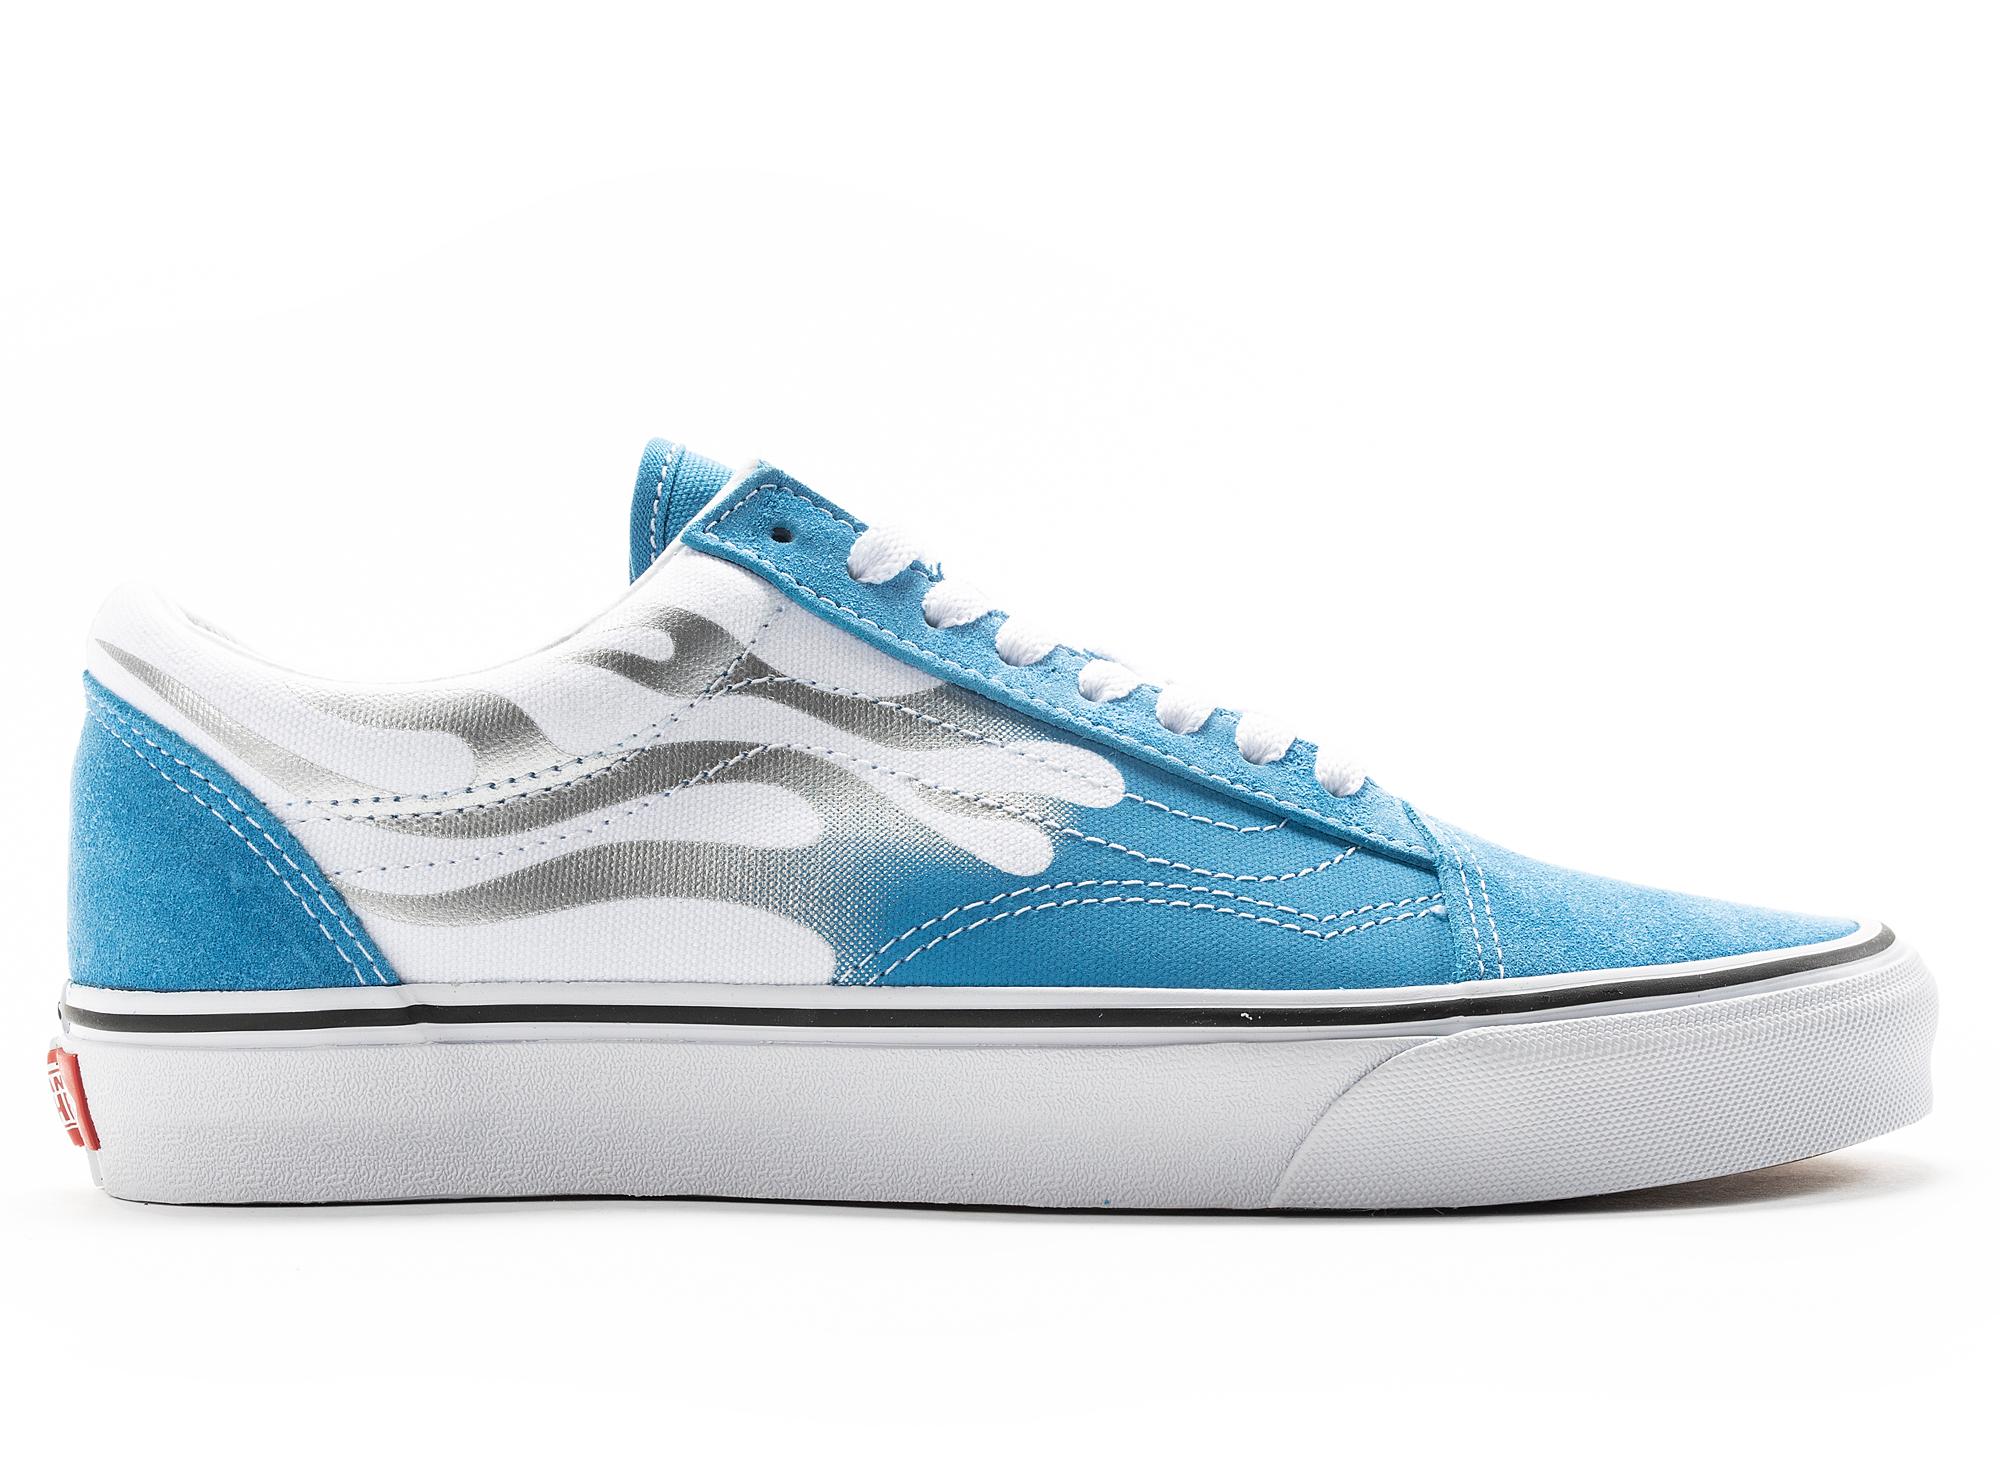 Vans Old Skool 'Blue Flame'